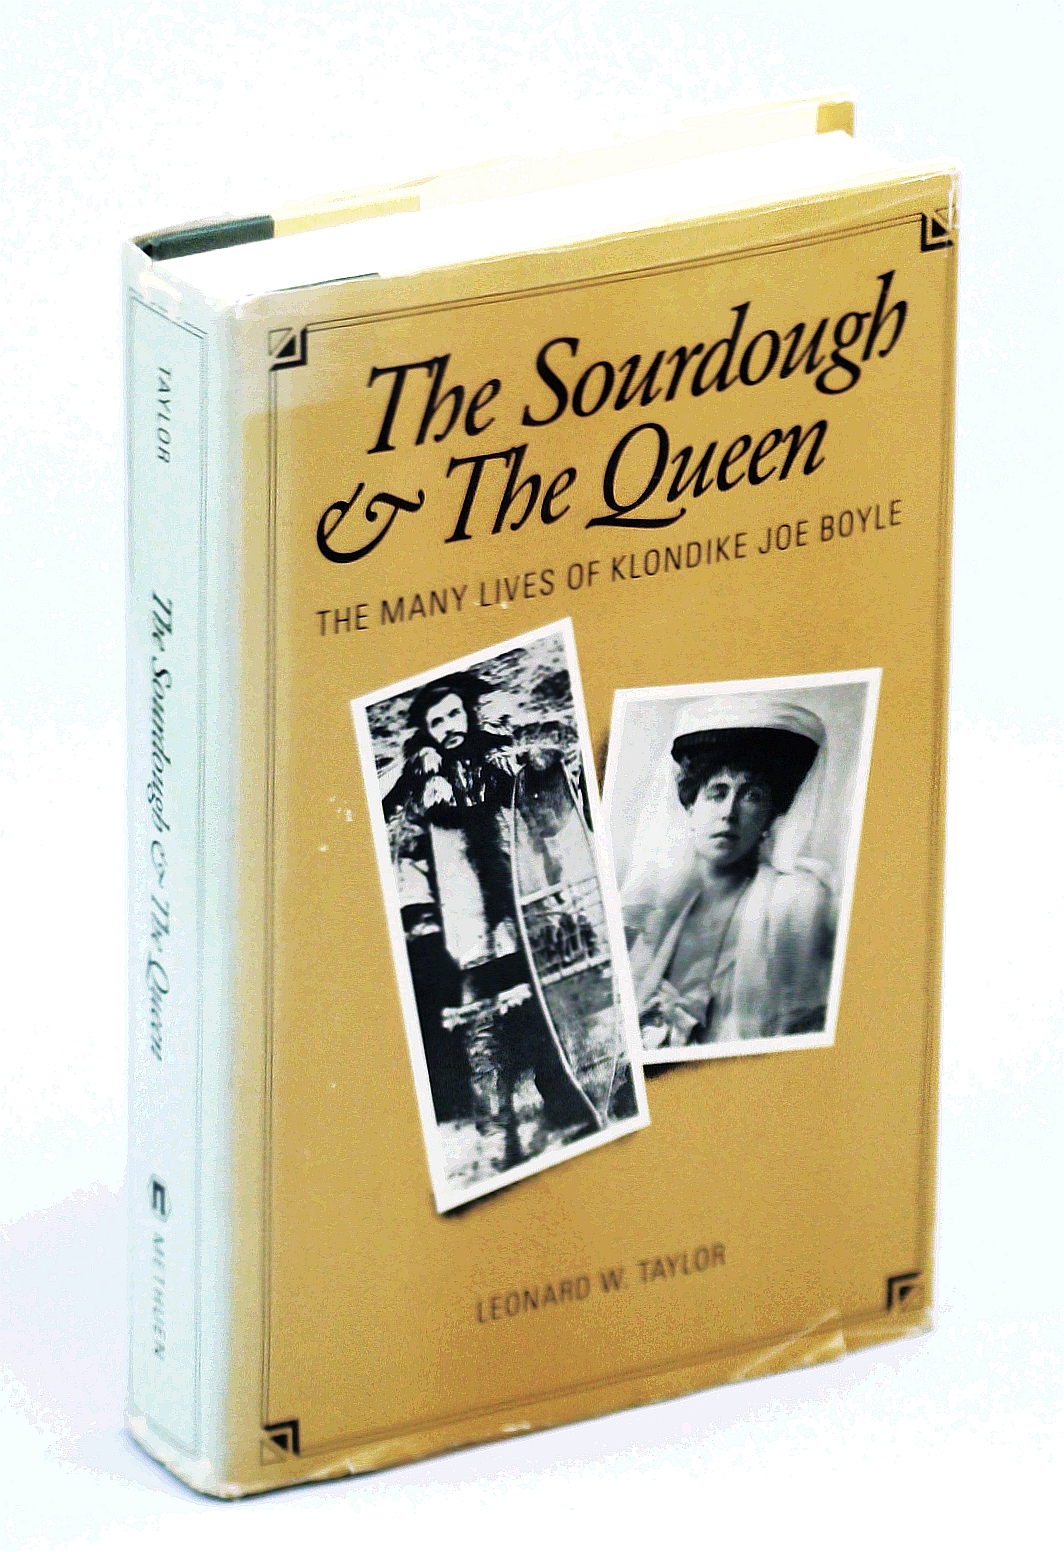 Image for Sour-dough and the Queen: Many Lives of Klondike Joe Boyle